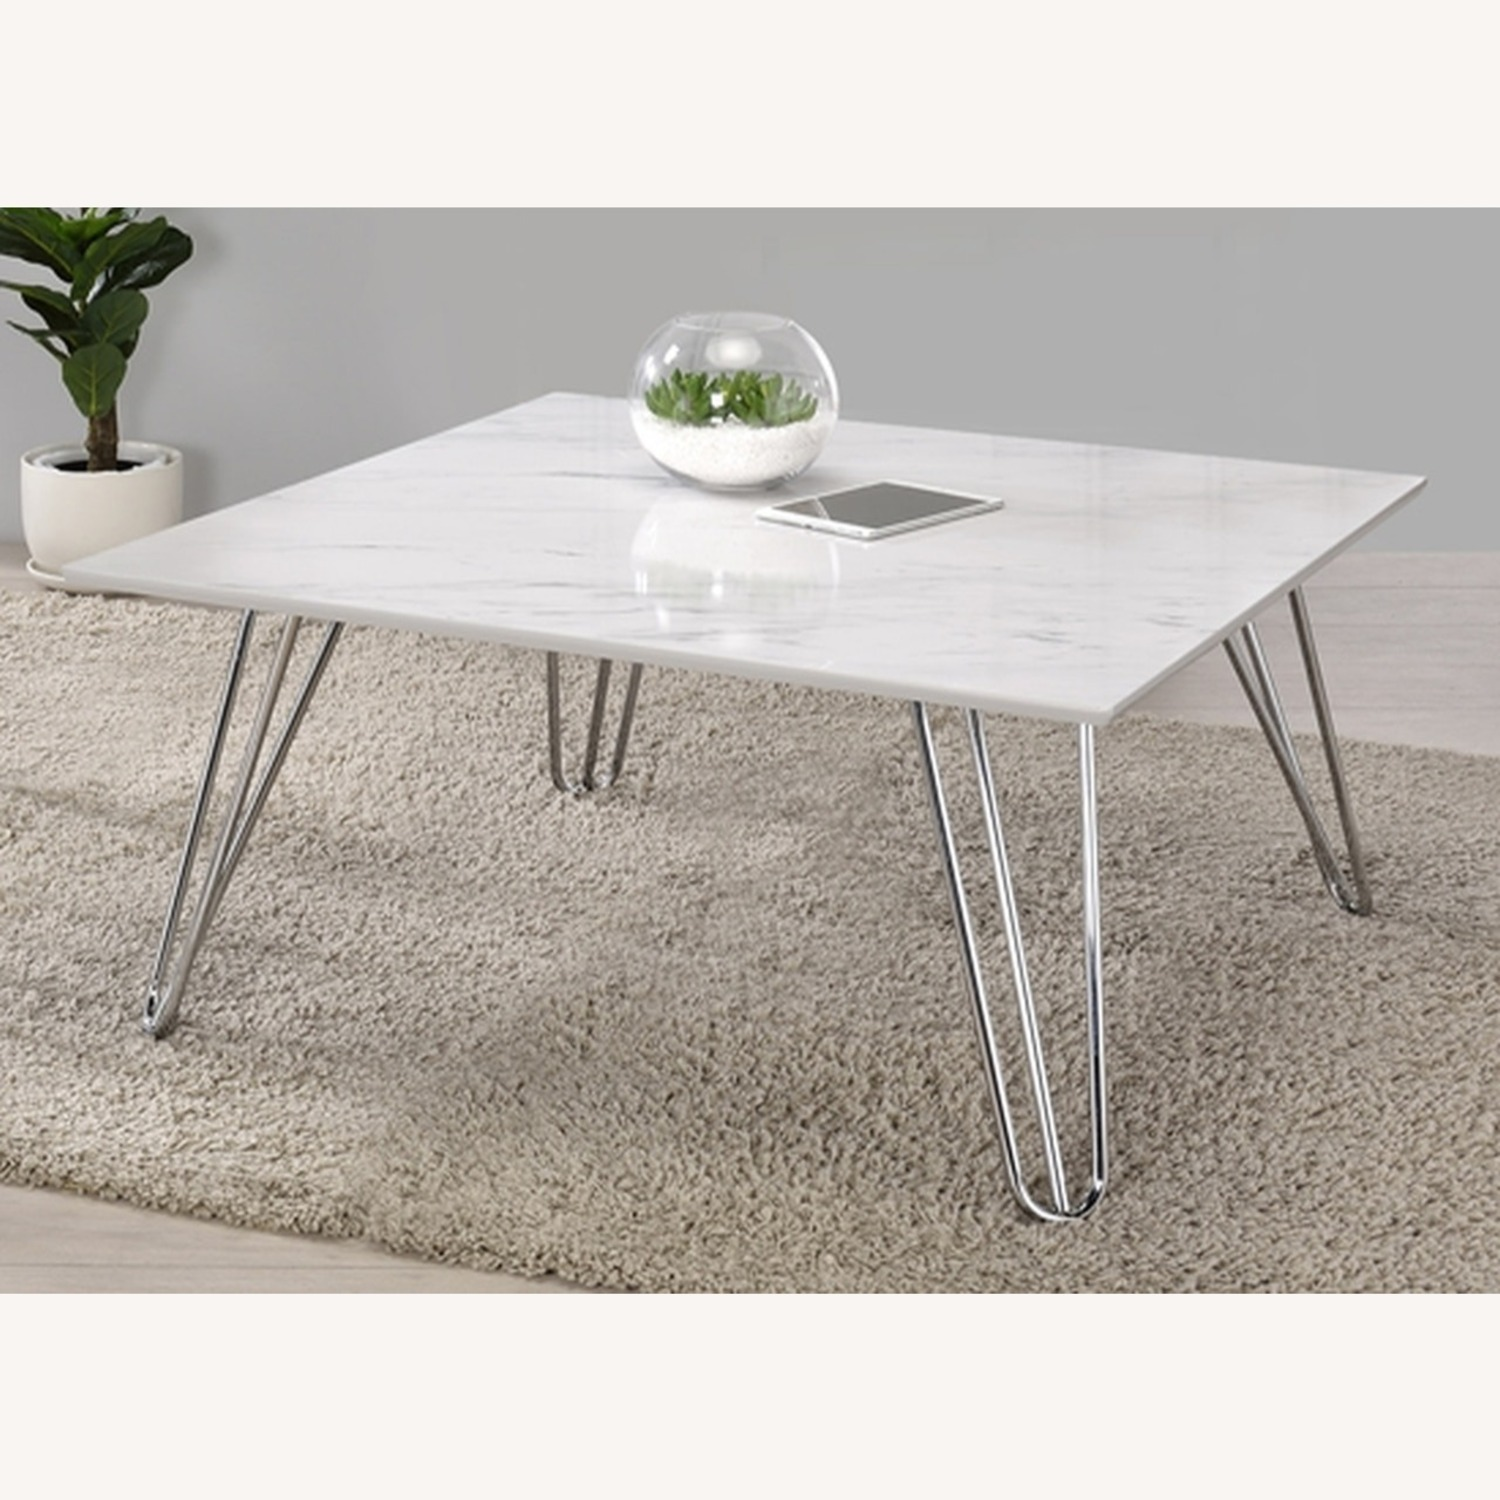 Coffee Table In White Faux Marble Finish - image-1